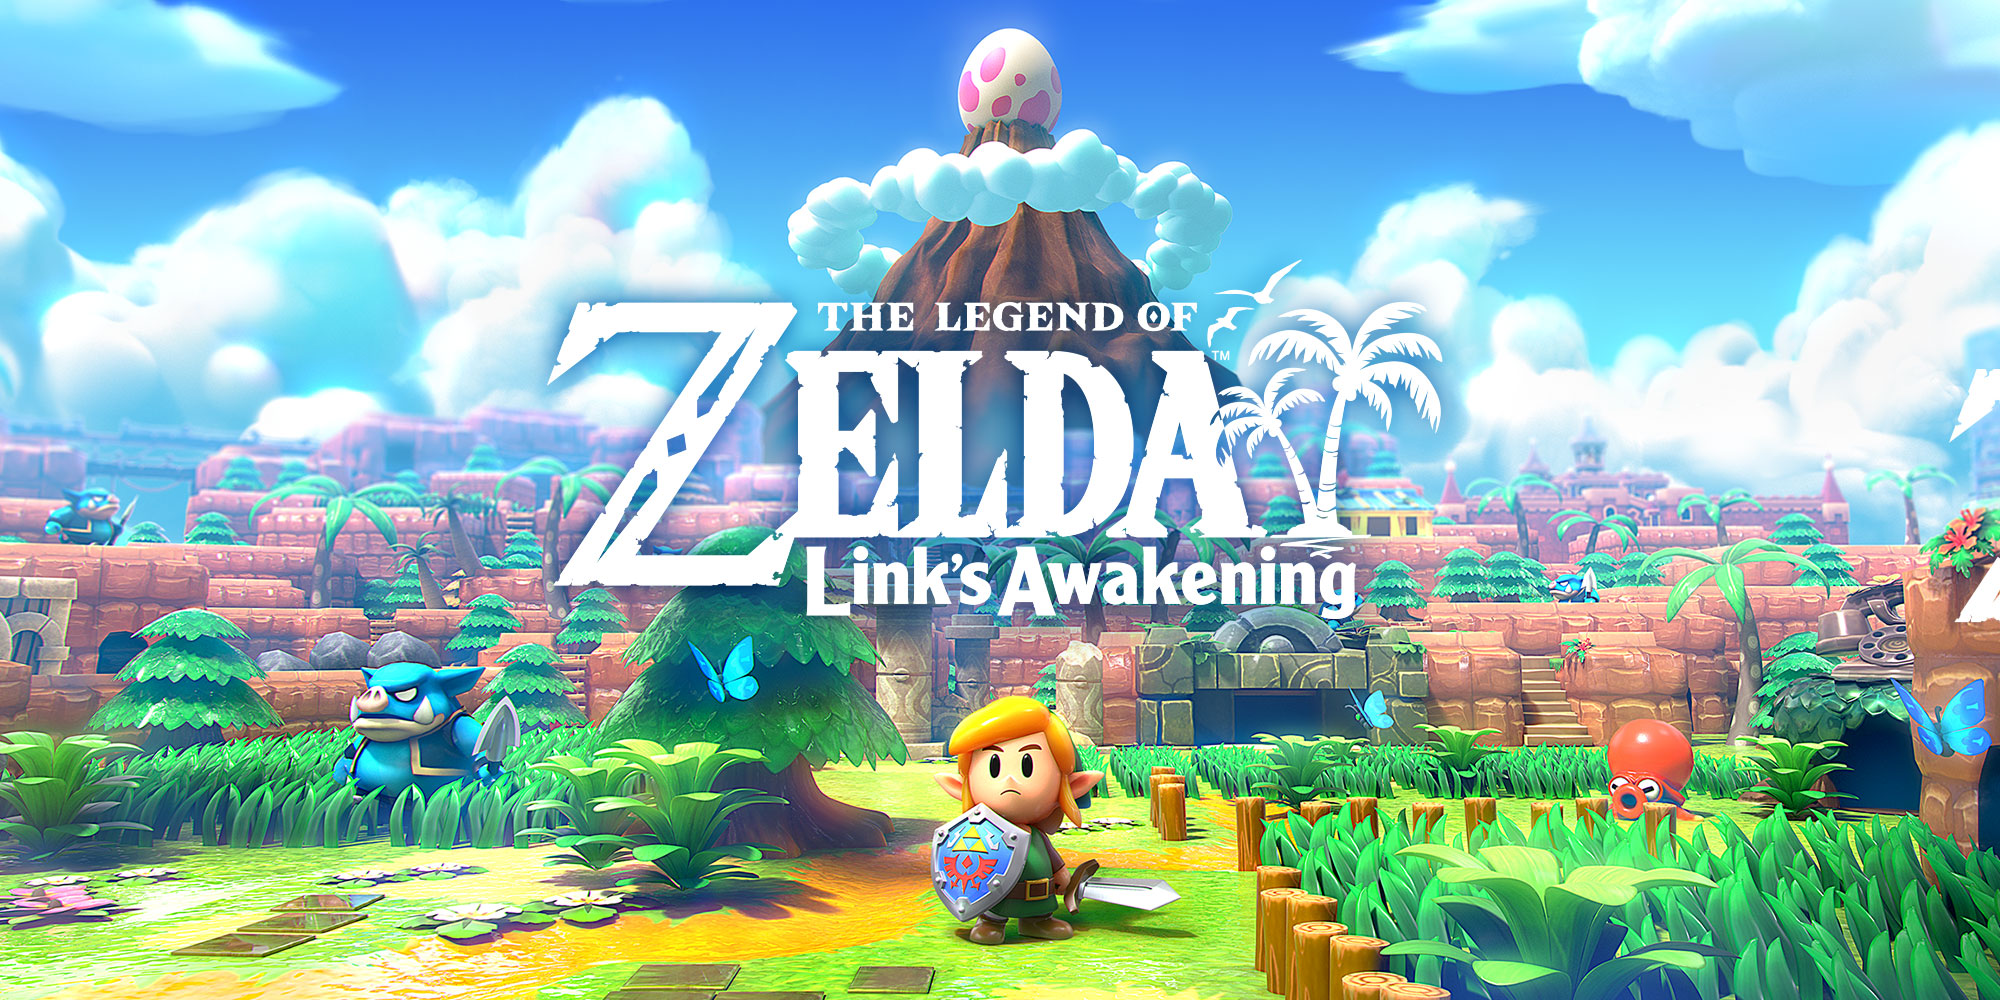 Learn more about The Legend of Zelda: Link's Awakening from series producer Eiji Aonuma!